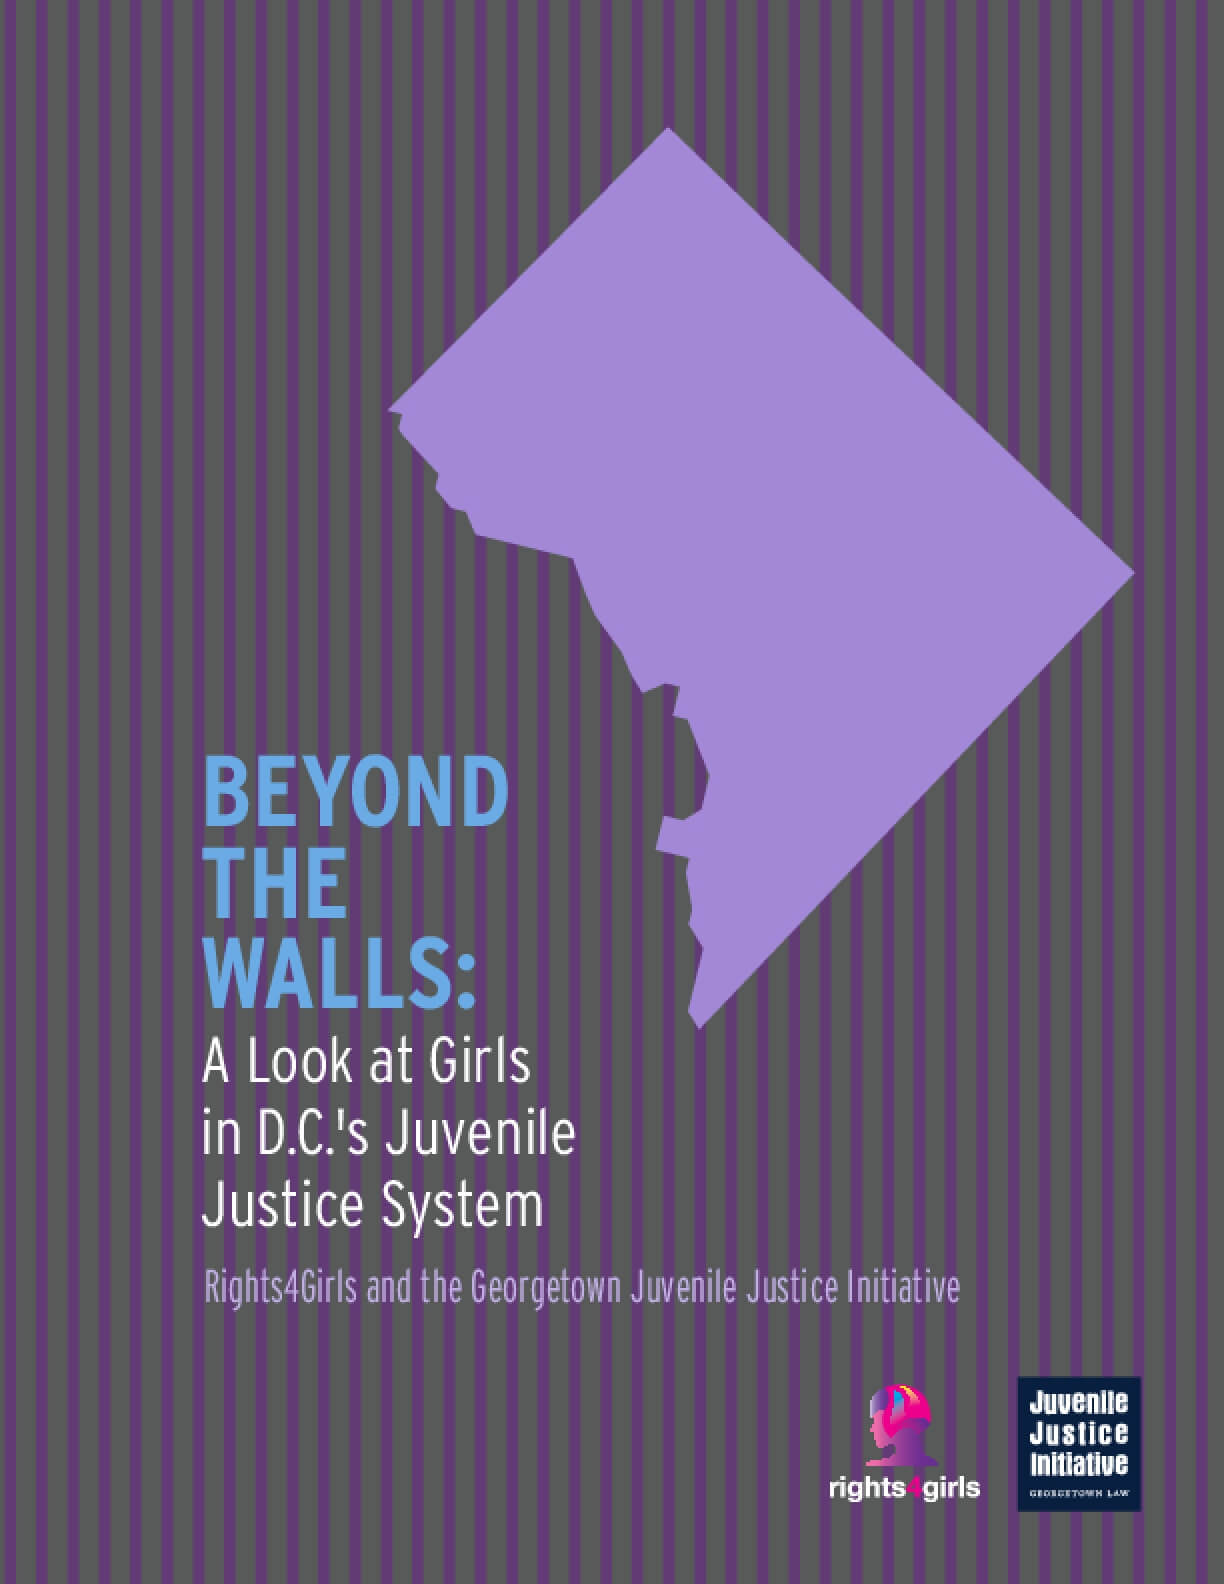 Beyond the Walls: A Look at Girls in D.C.'s Juvenile Justice System